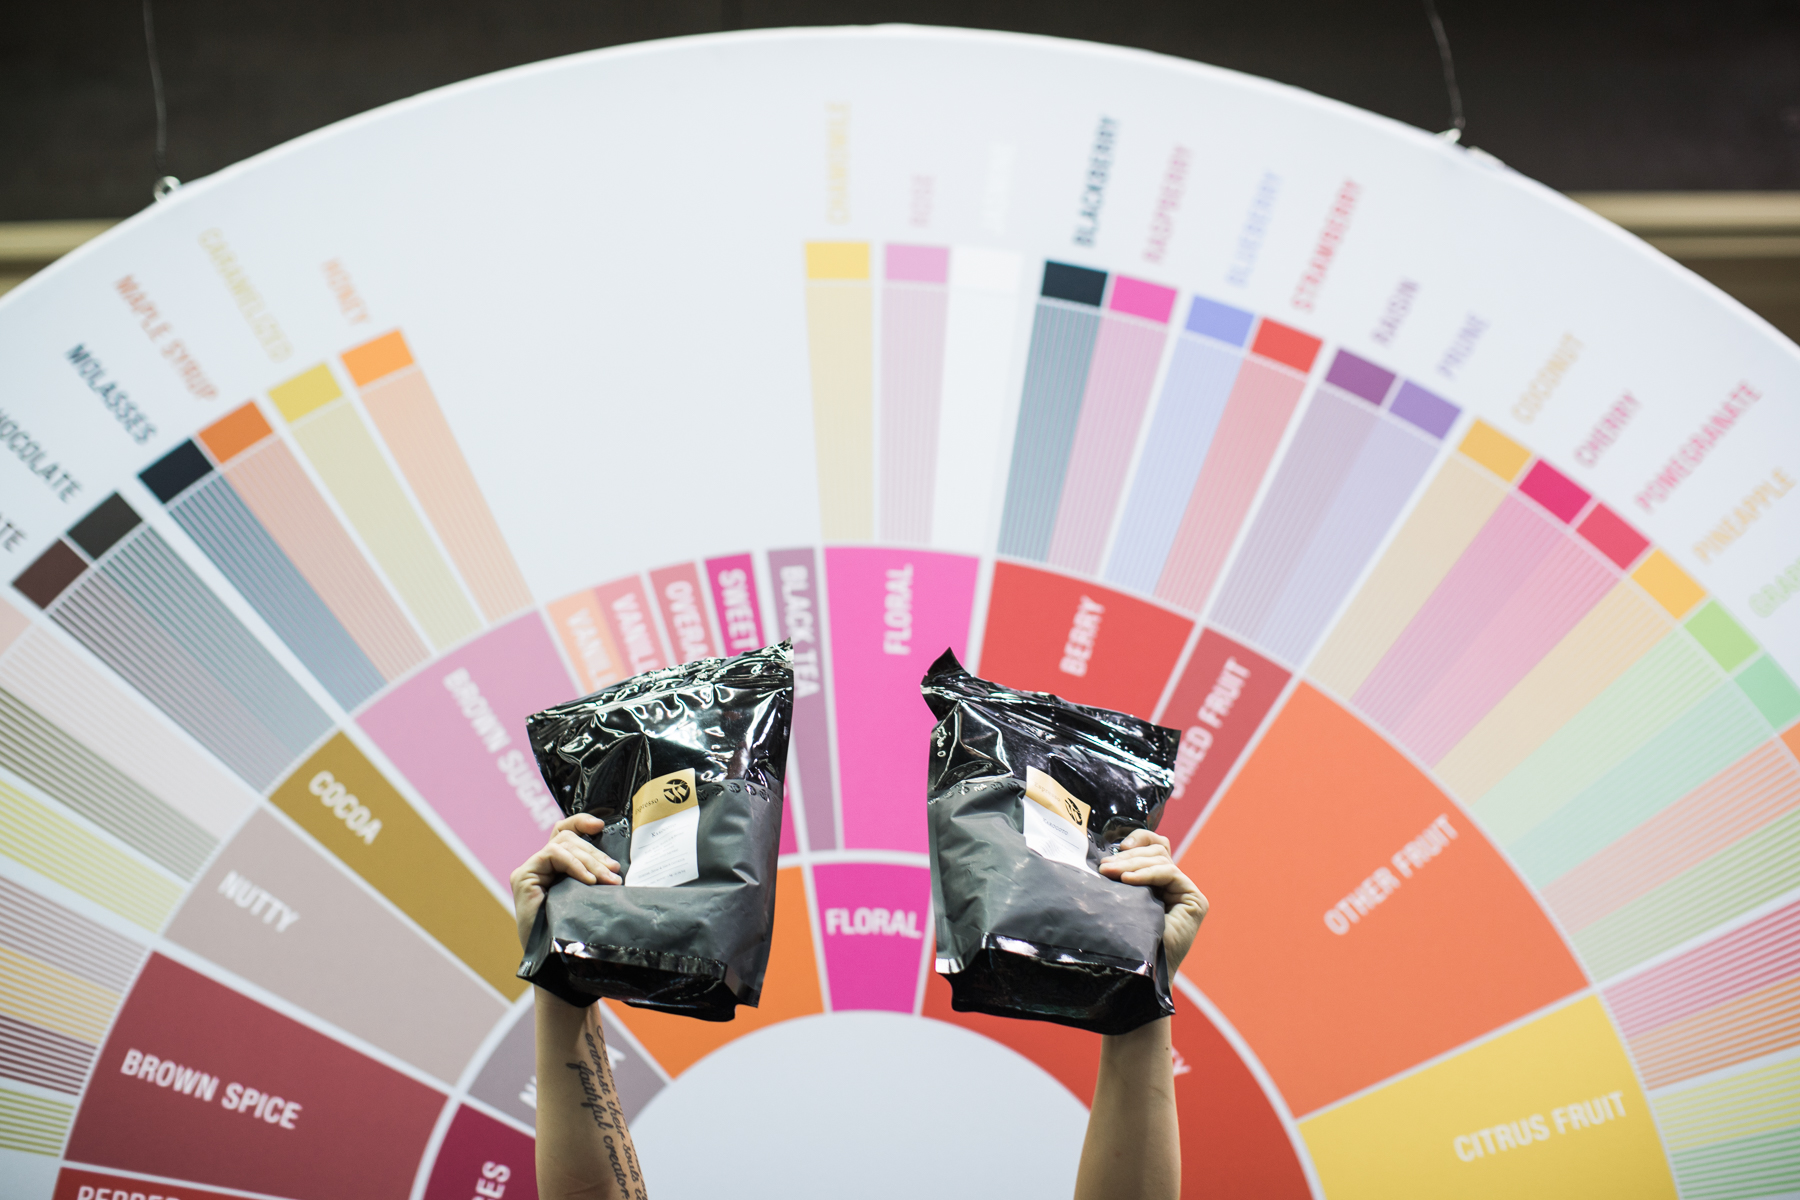 Two arms holding two bags of coffee in front of a coffee tasting flavor wheel at the 2018 Coffee Expo.